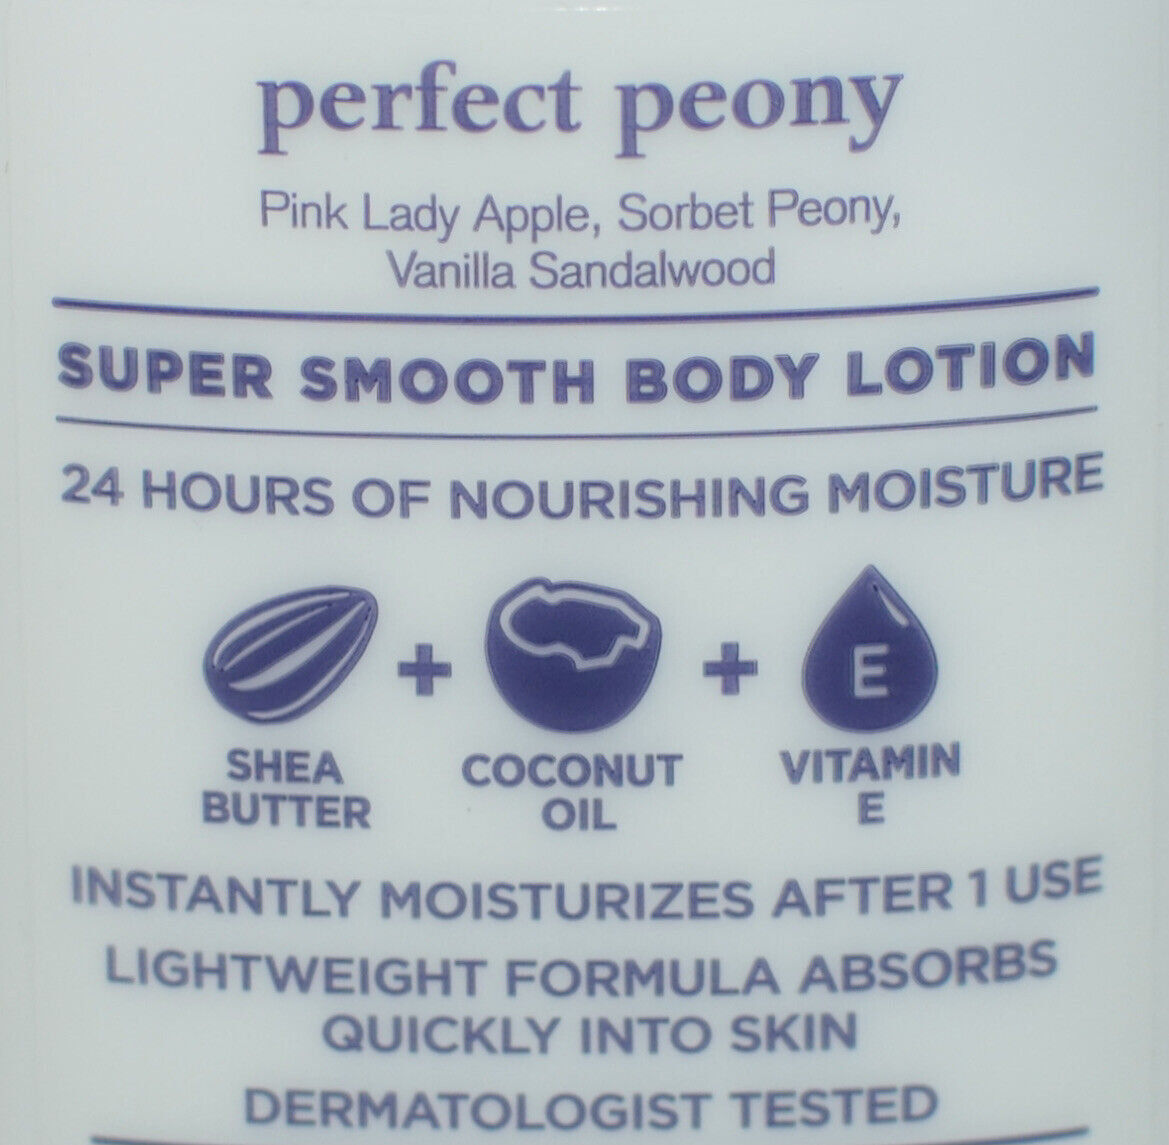 1 NEW BATH BODY WORKS PERFECT PEONY BODY LOTION CREAM HAND SHEA BUTTER 8OZ - $9.99